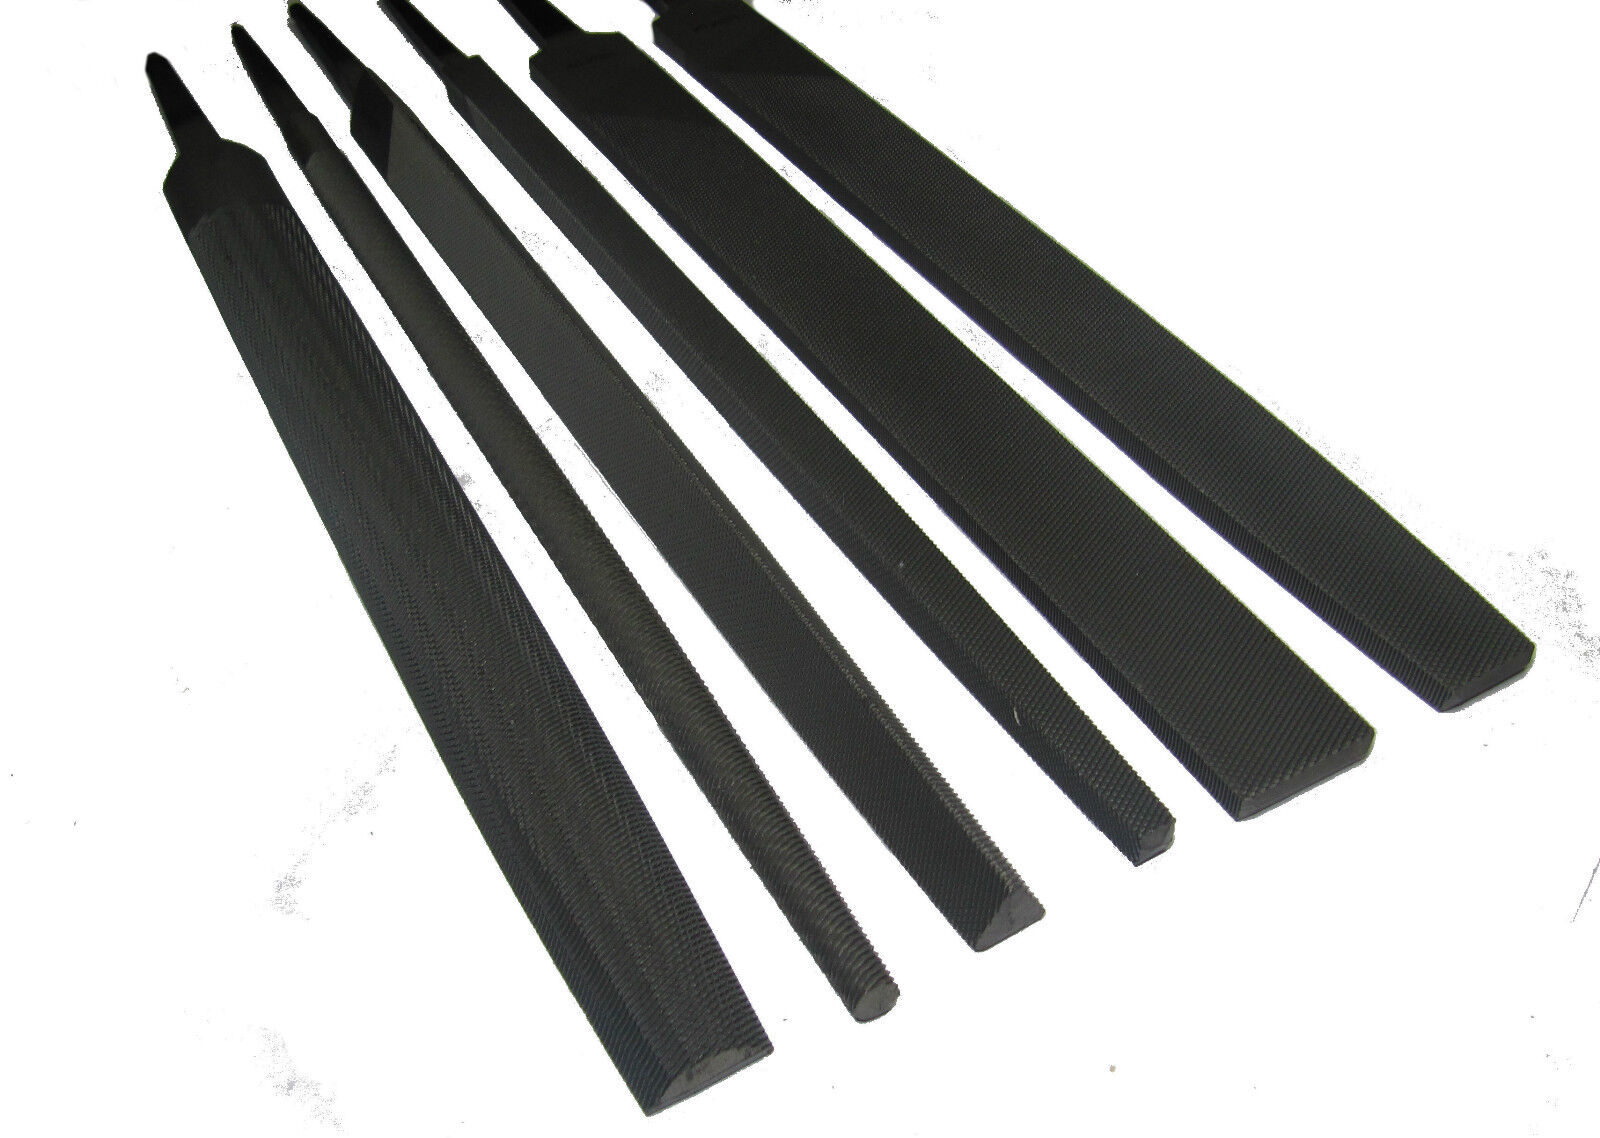 """For Precision Hand Metal File Flat Steel FineTeeth 4-18/""""100-350mm Quality Swiss"""